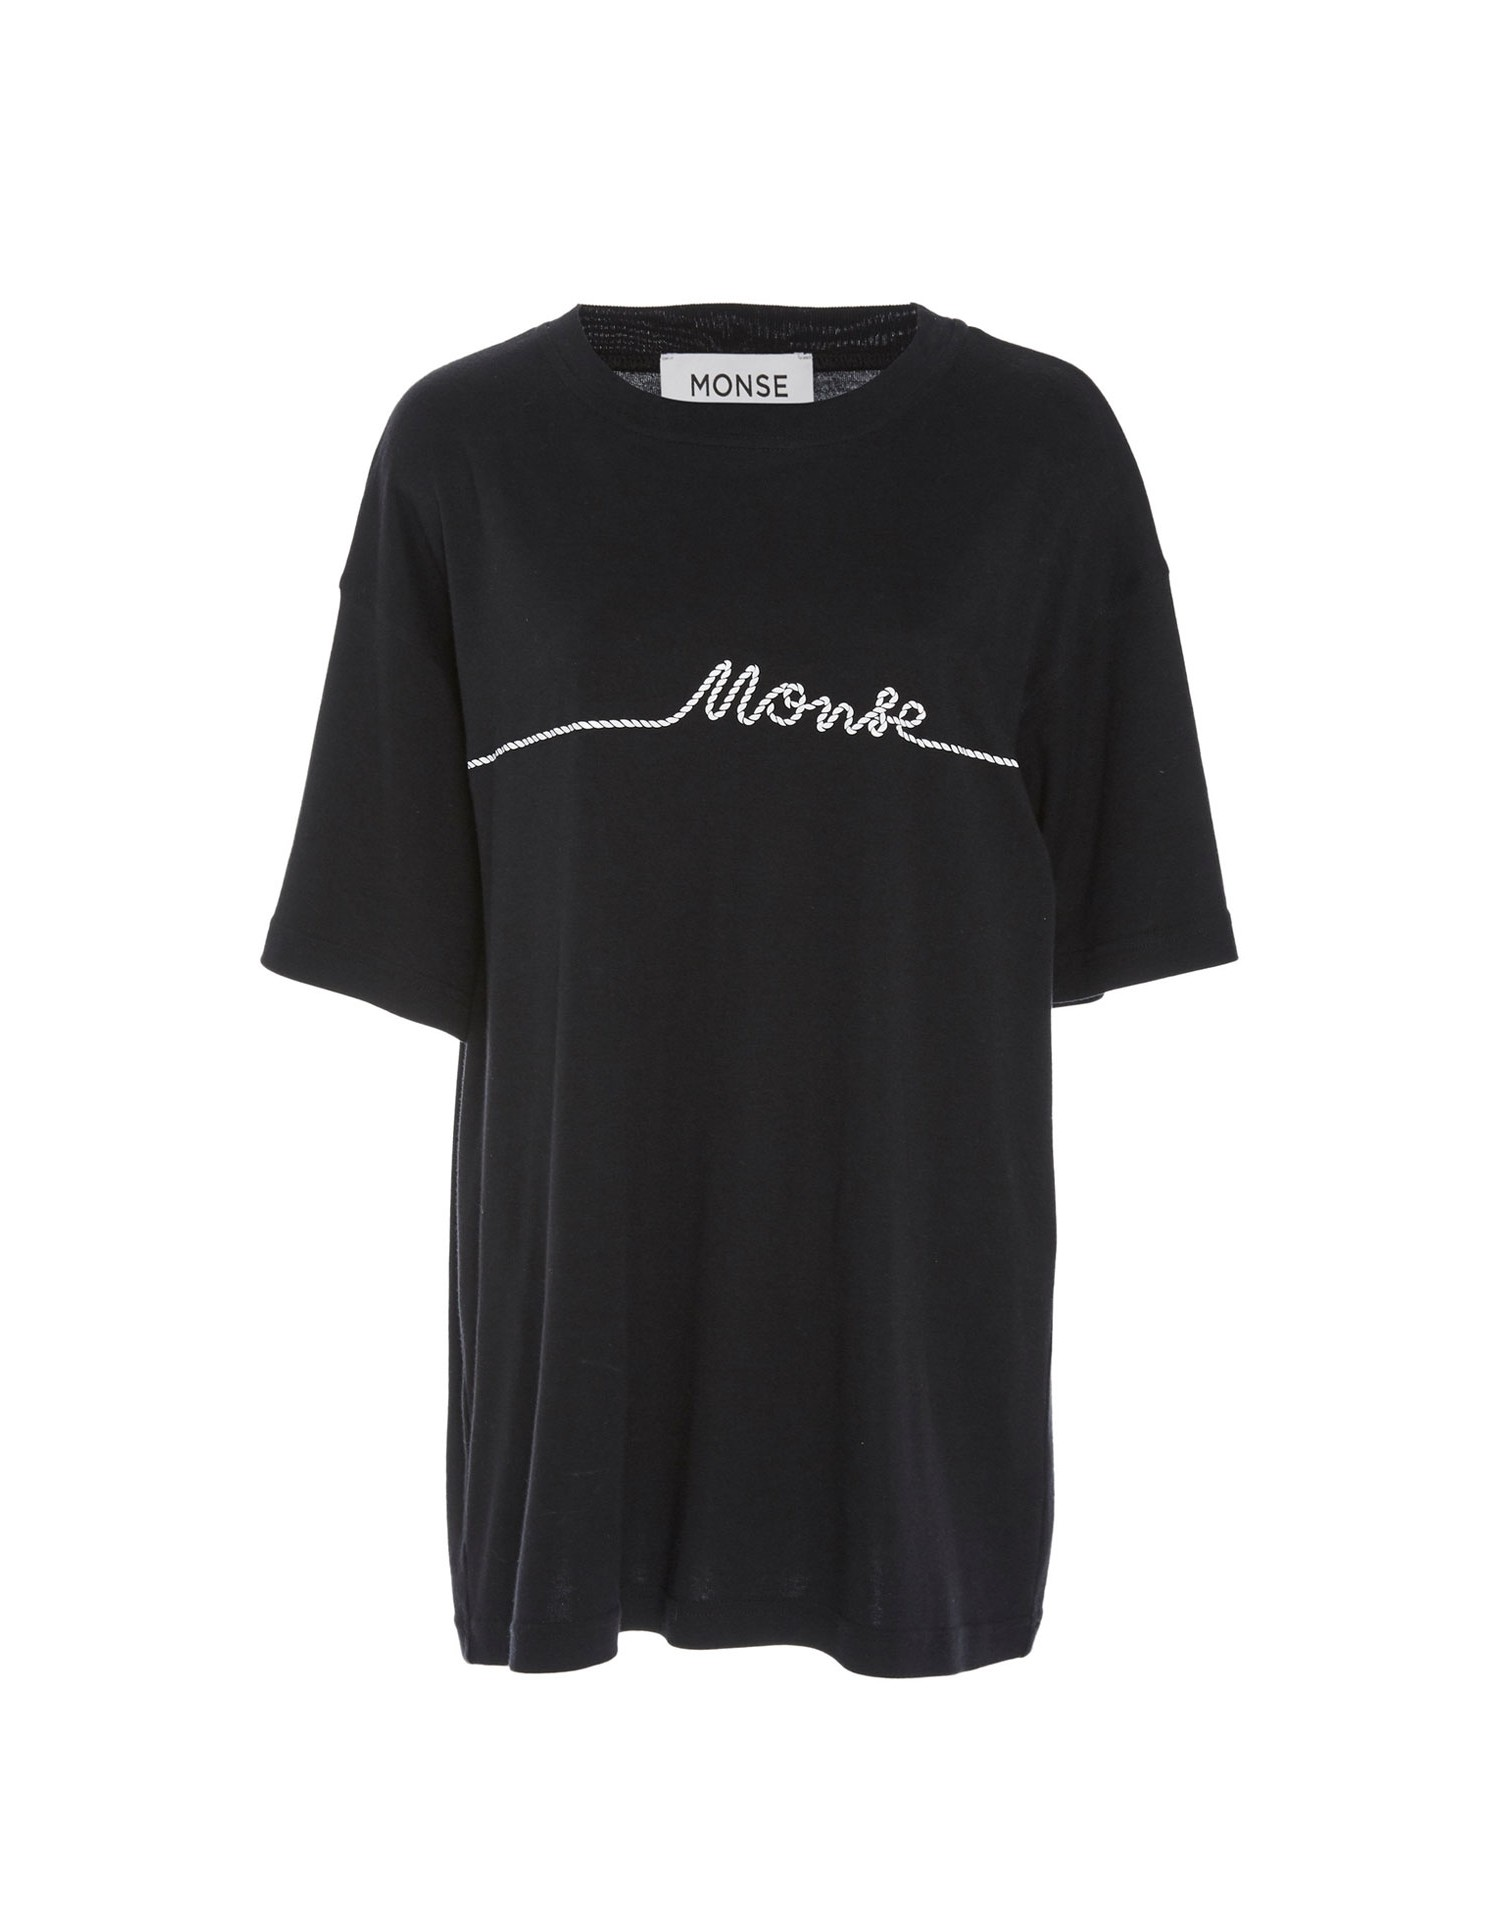 Monse Unisex Small Rope Print Tee in Black Front